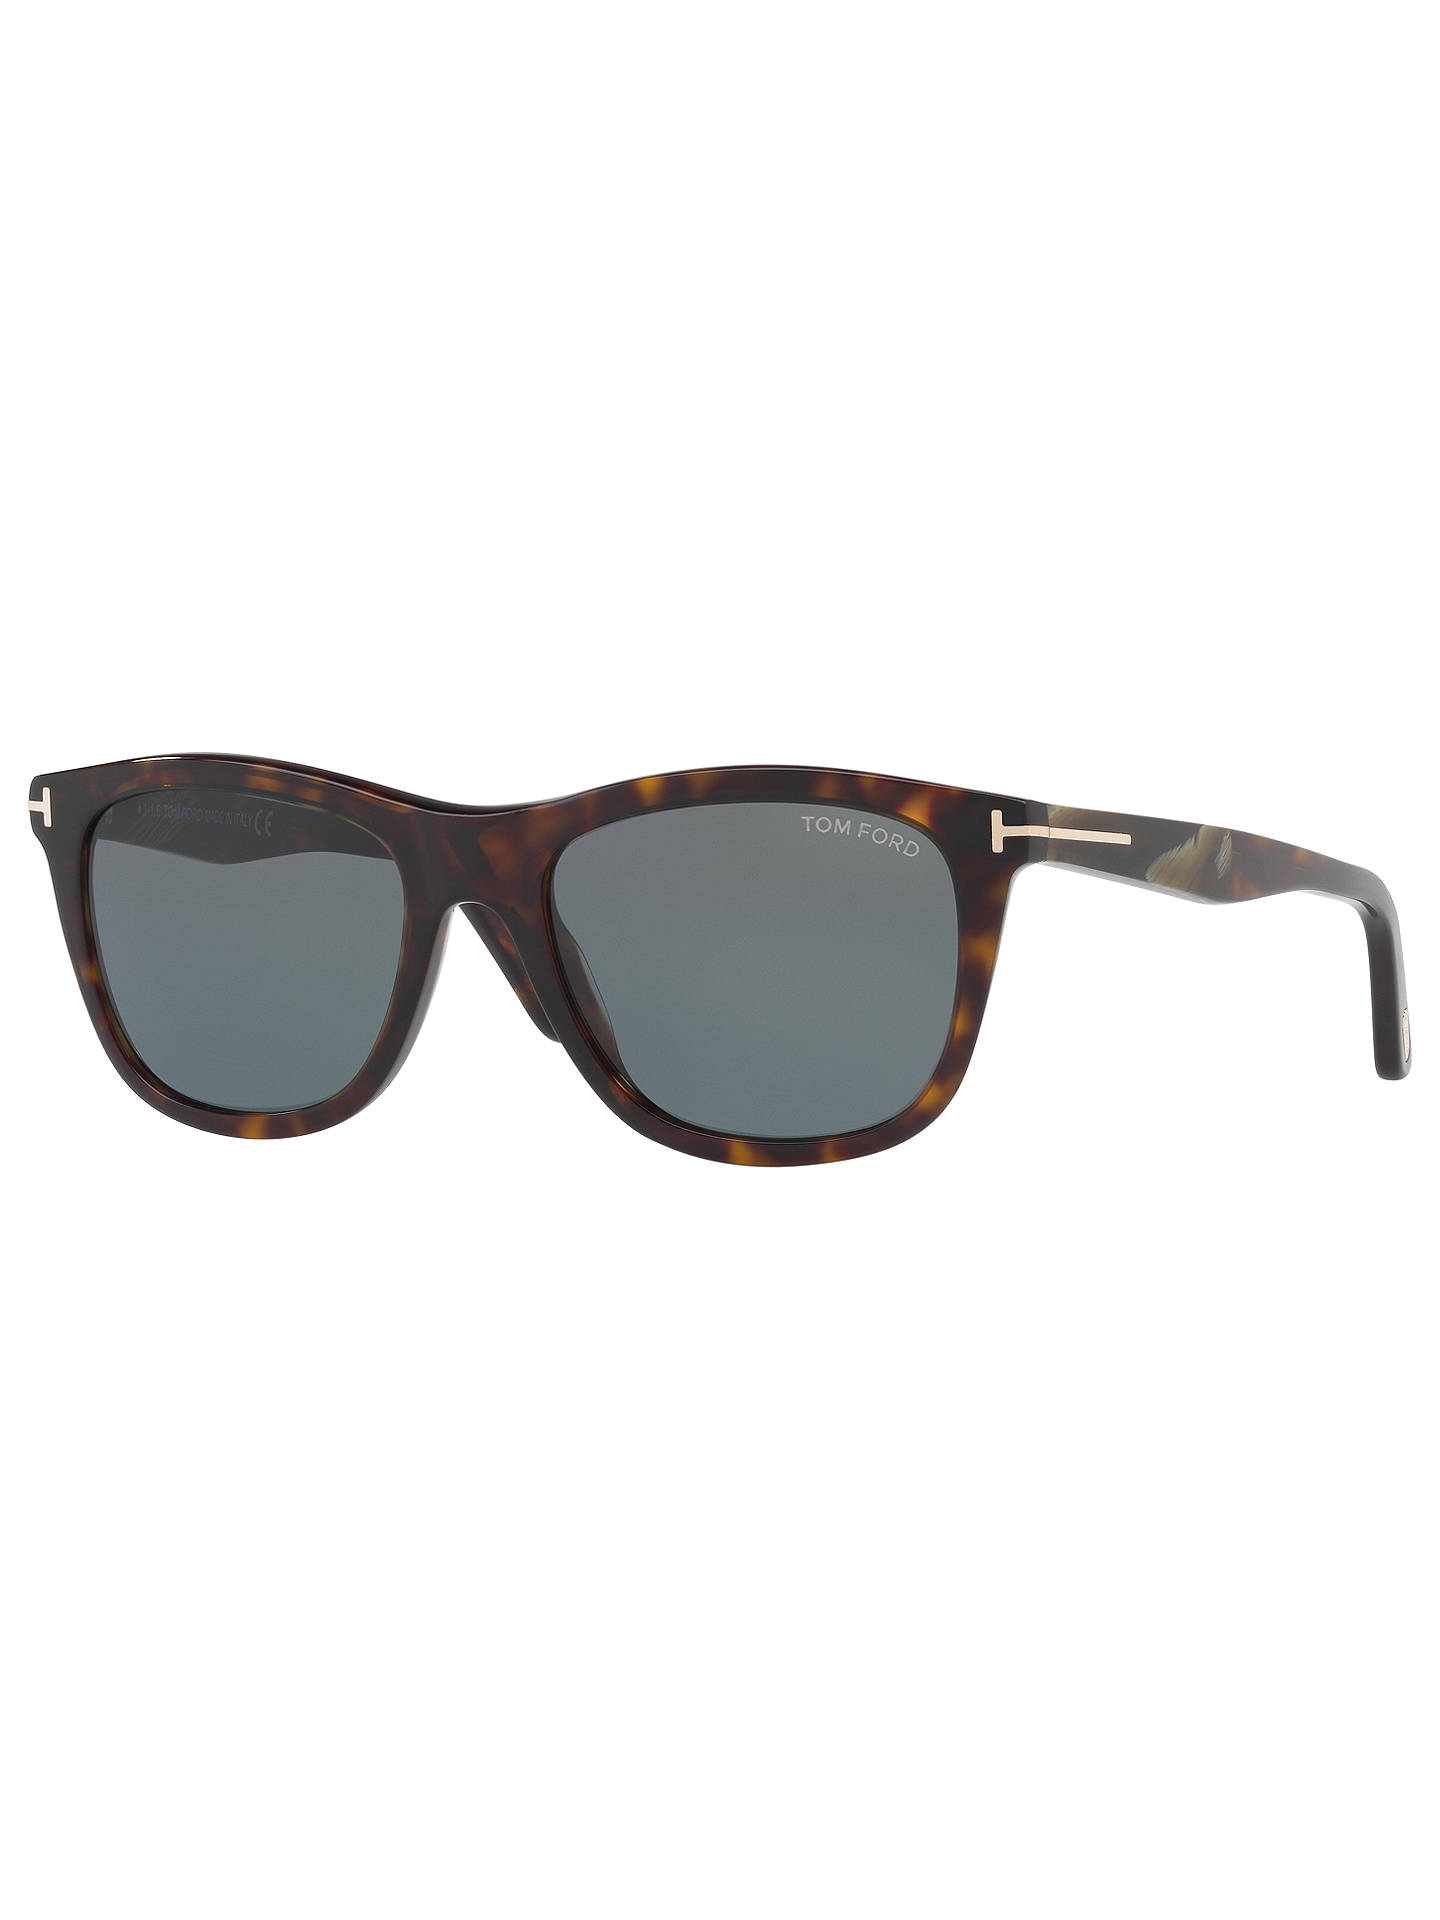 Tom Ford Sunglasses Men